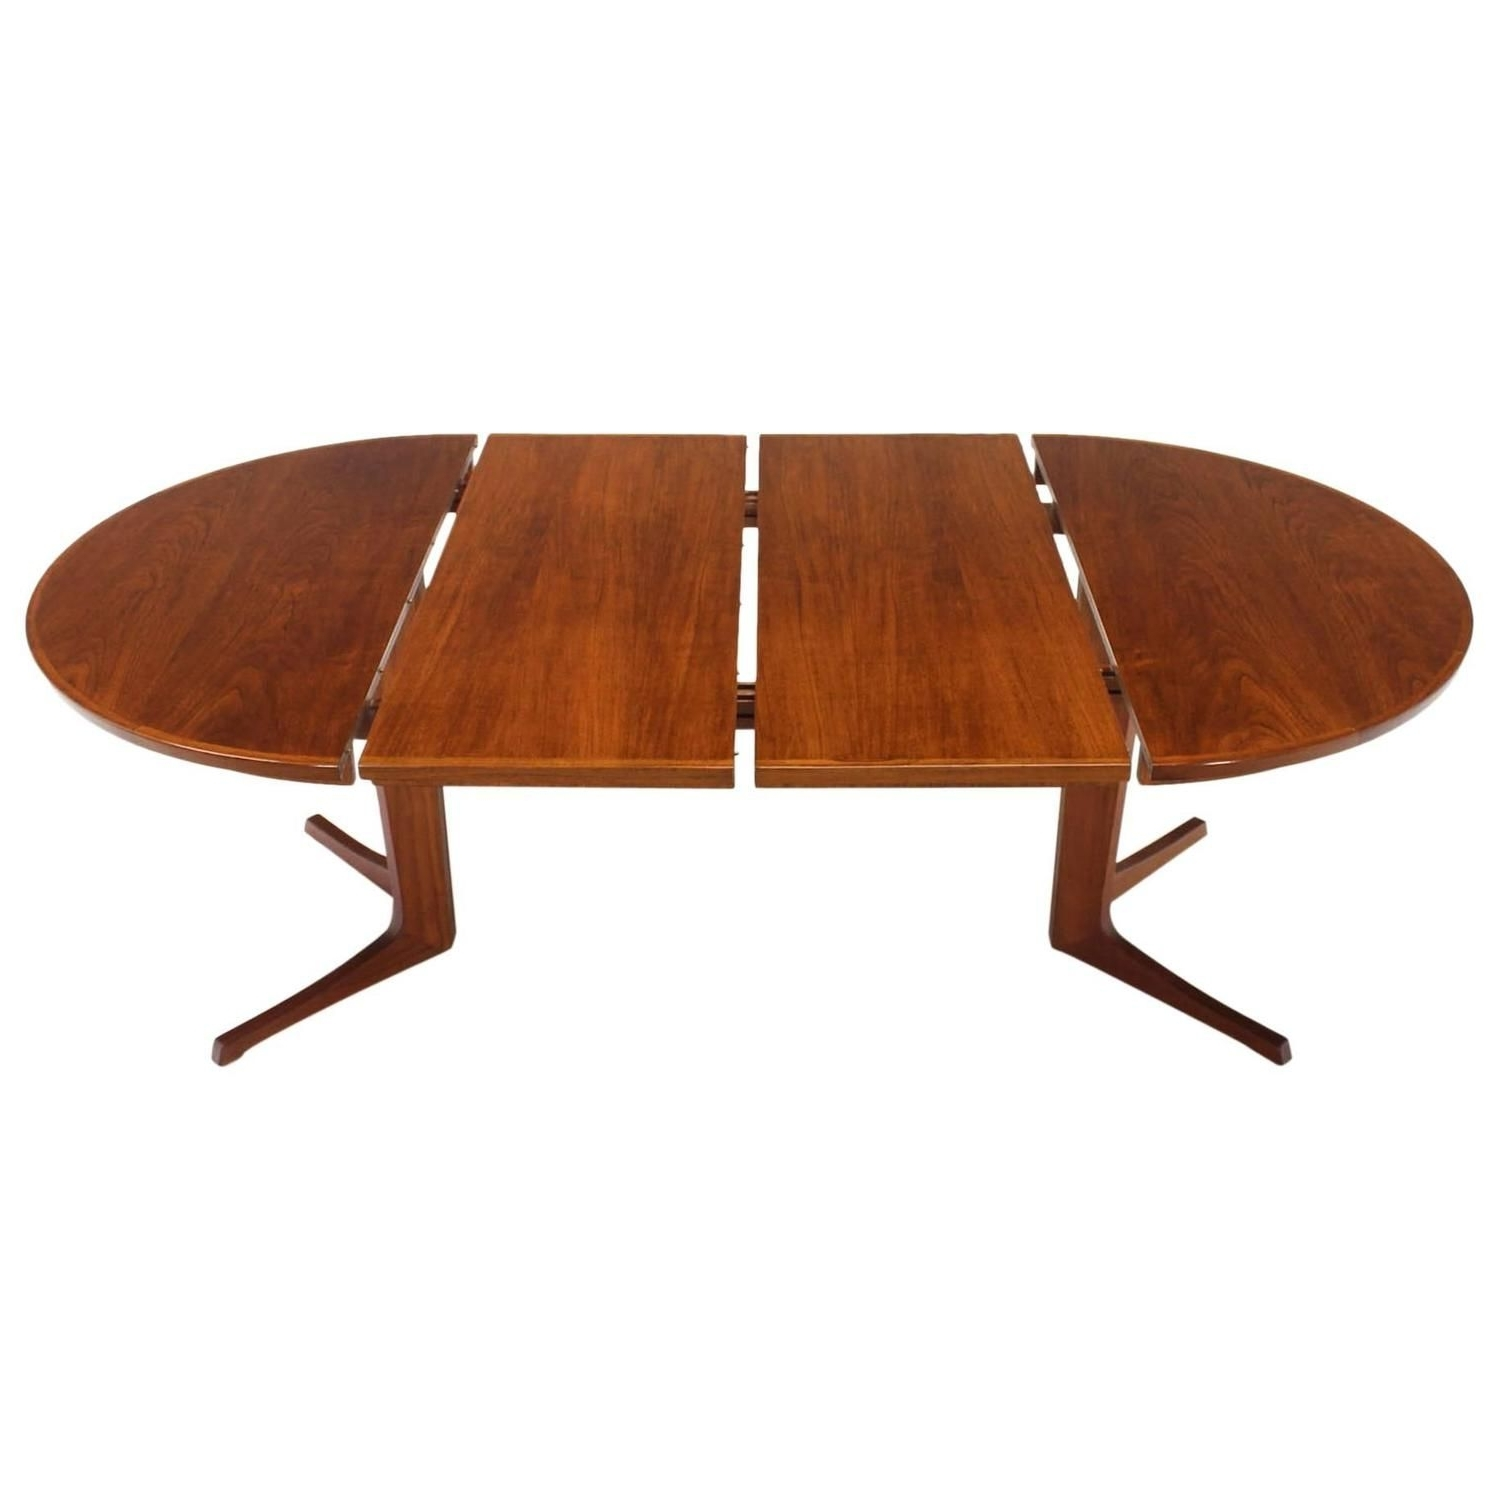 Round Danish Mid Century Modern Teak Dining Table With Two Leaves With Favorite Round Teak Dining Tables (View 6 of 25)